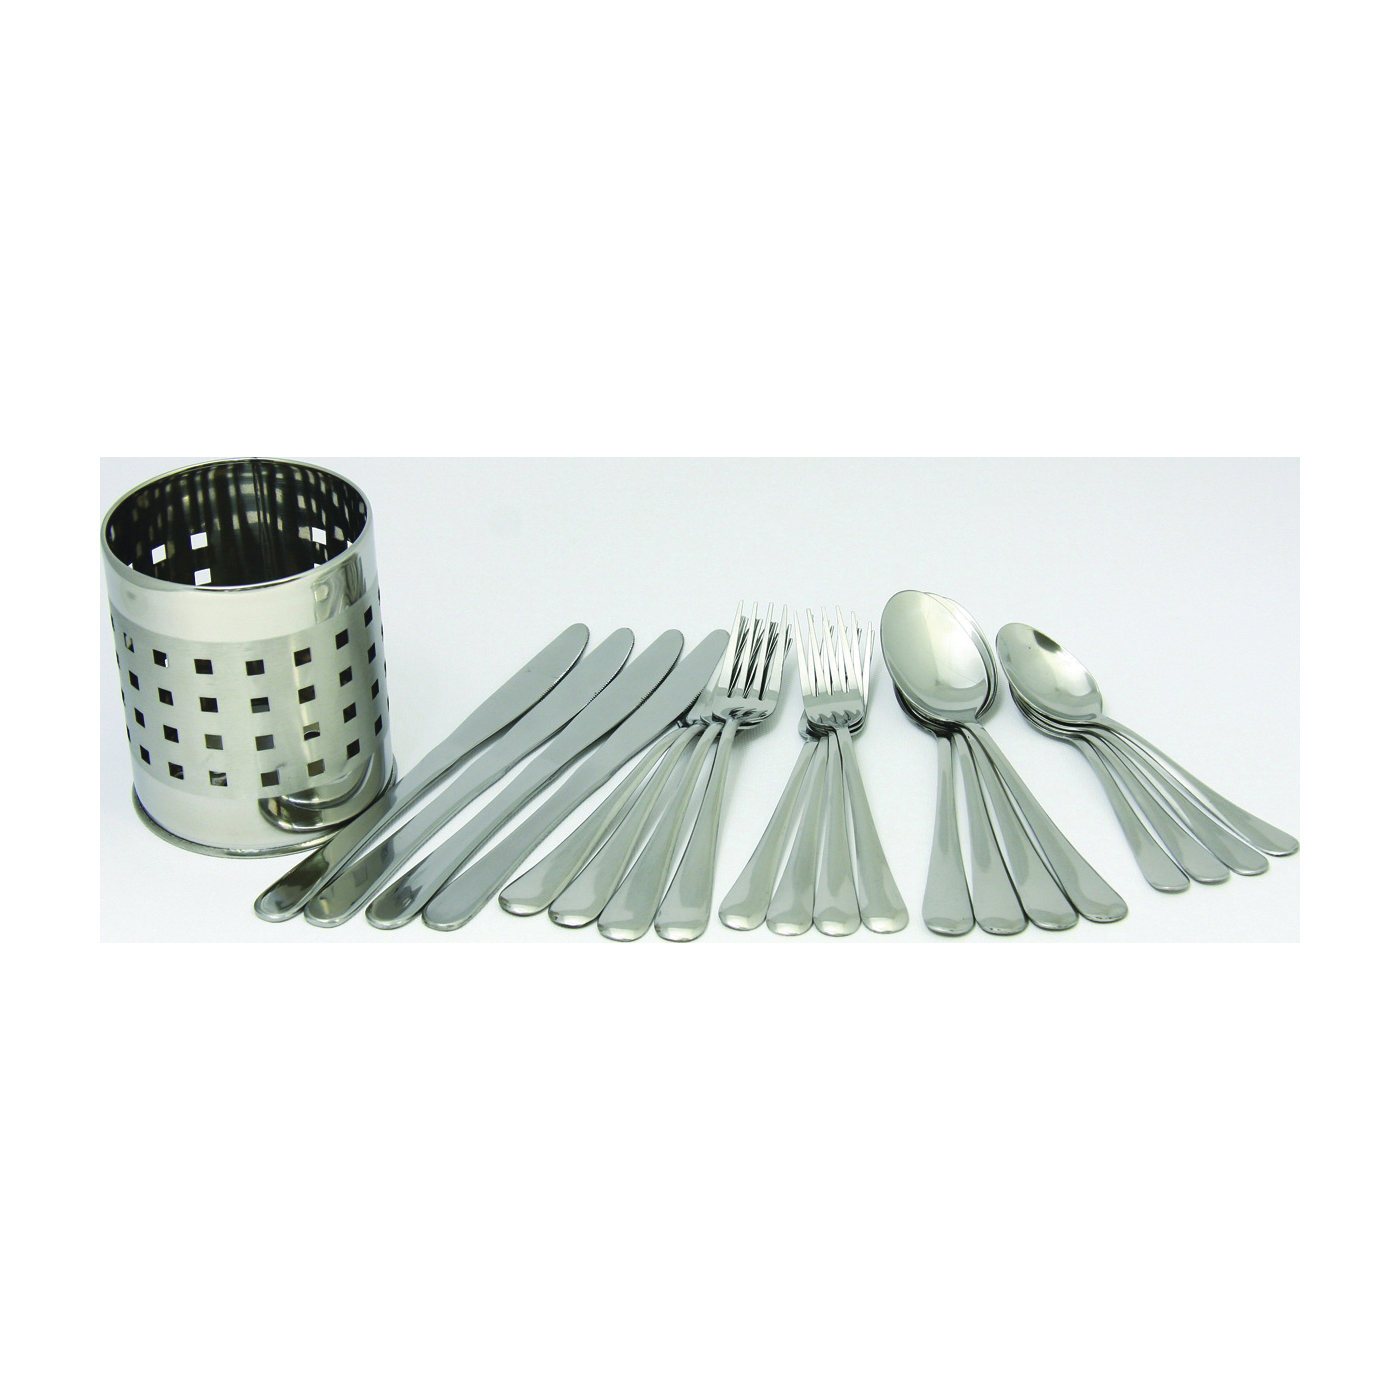 Picture of CHEF CRAFT 21710 Flatware Set, 20-Piece, Stainless Steel